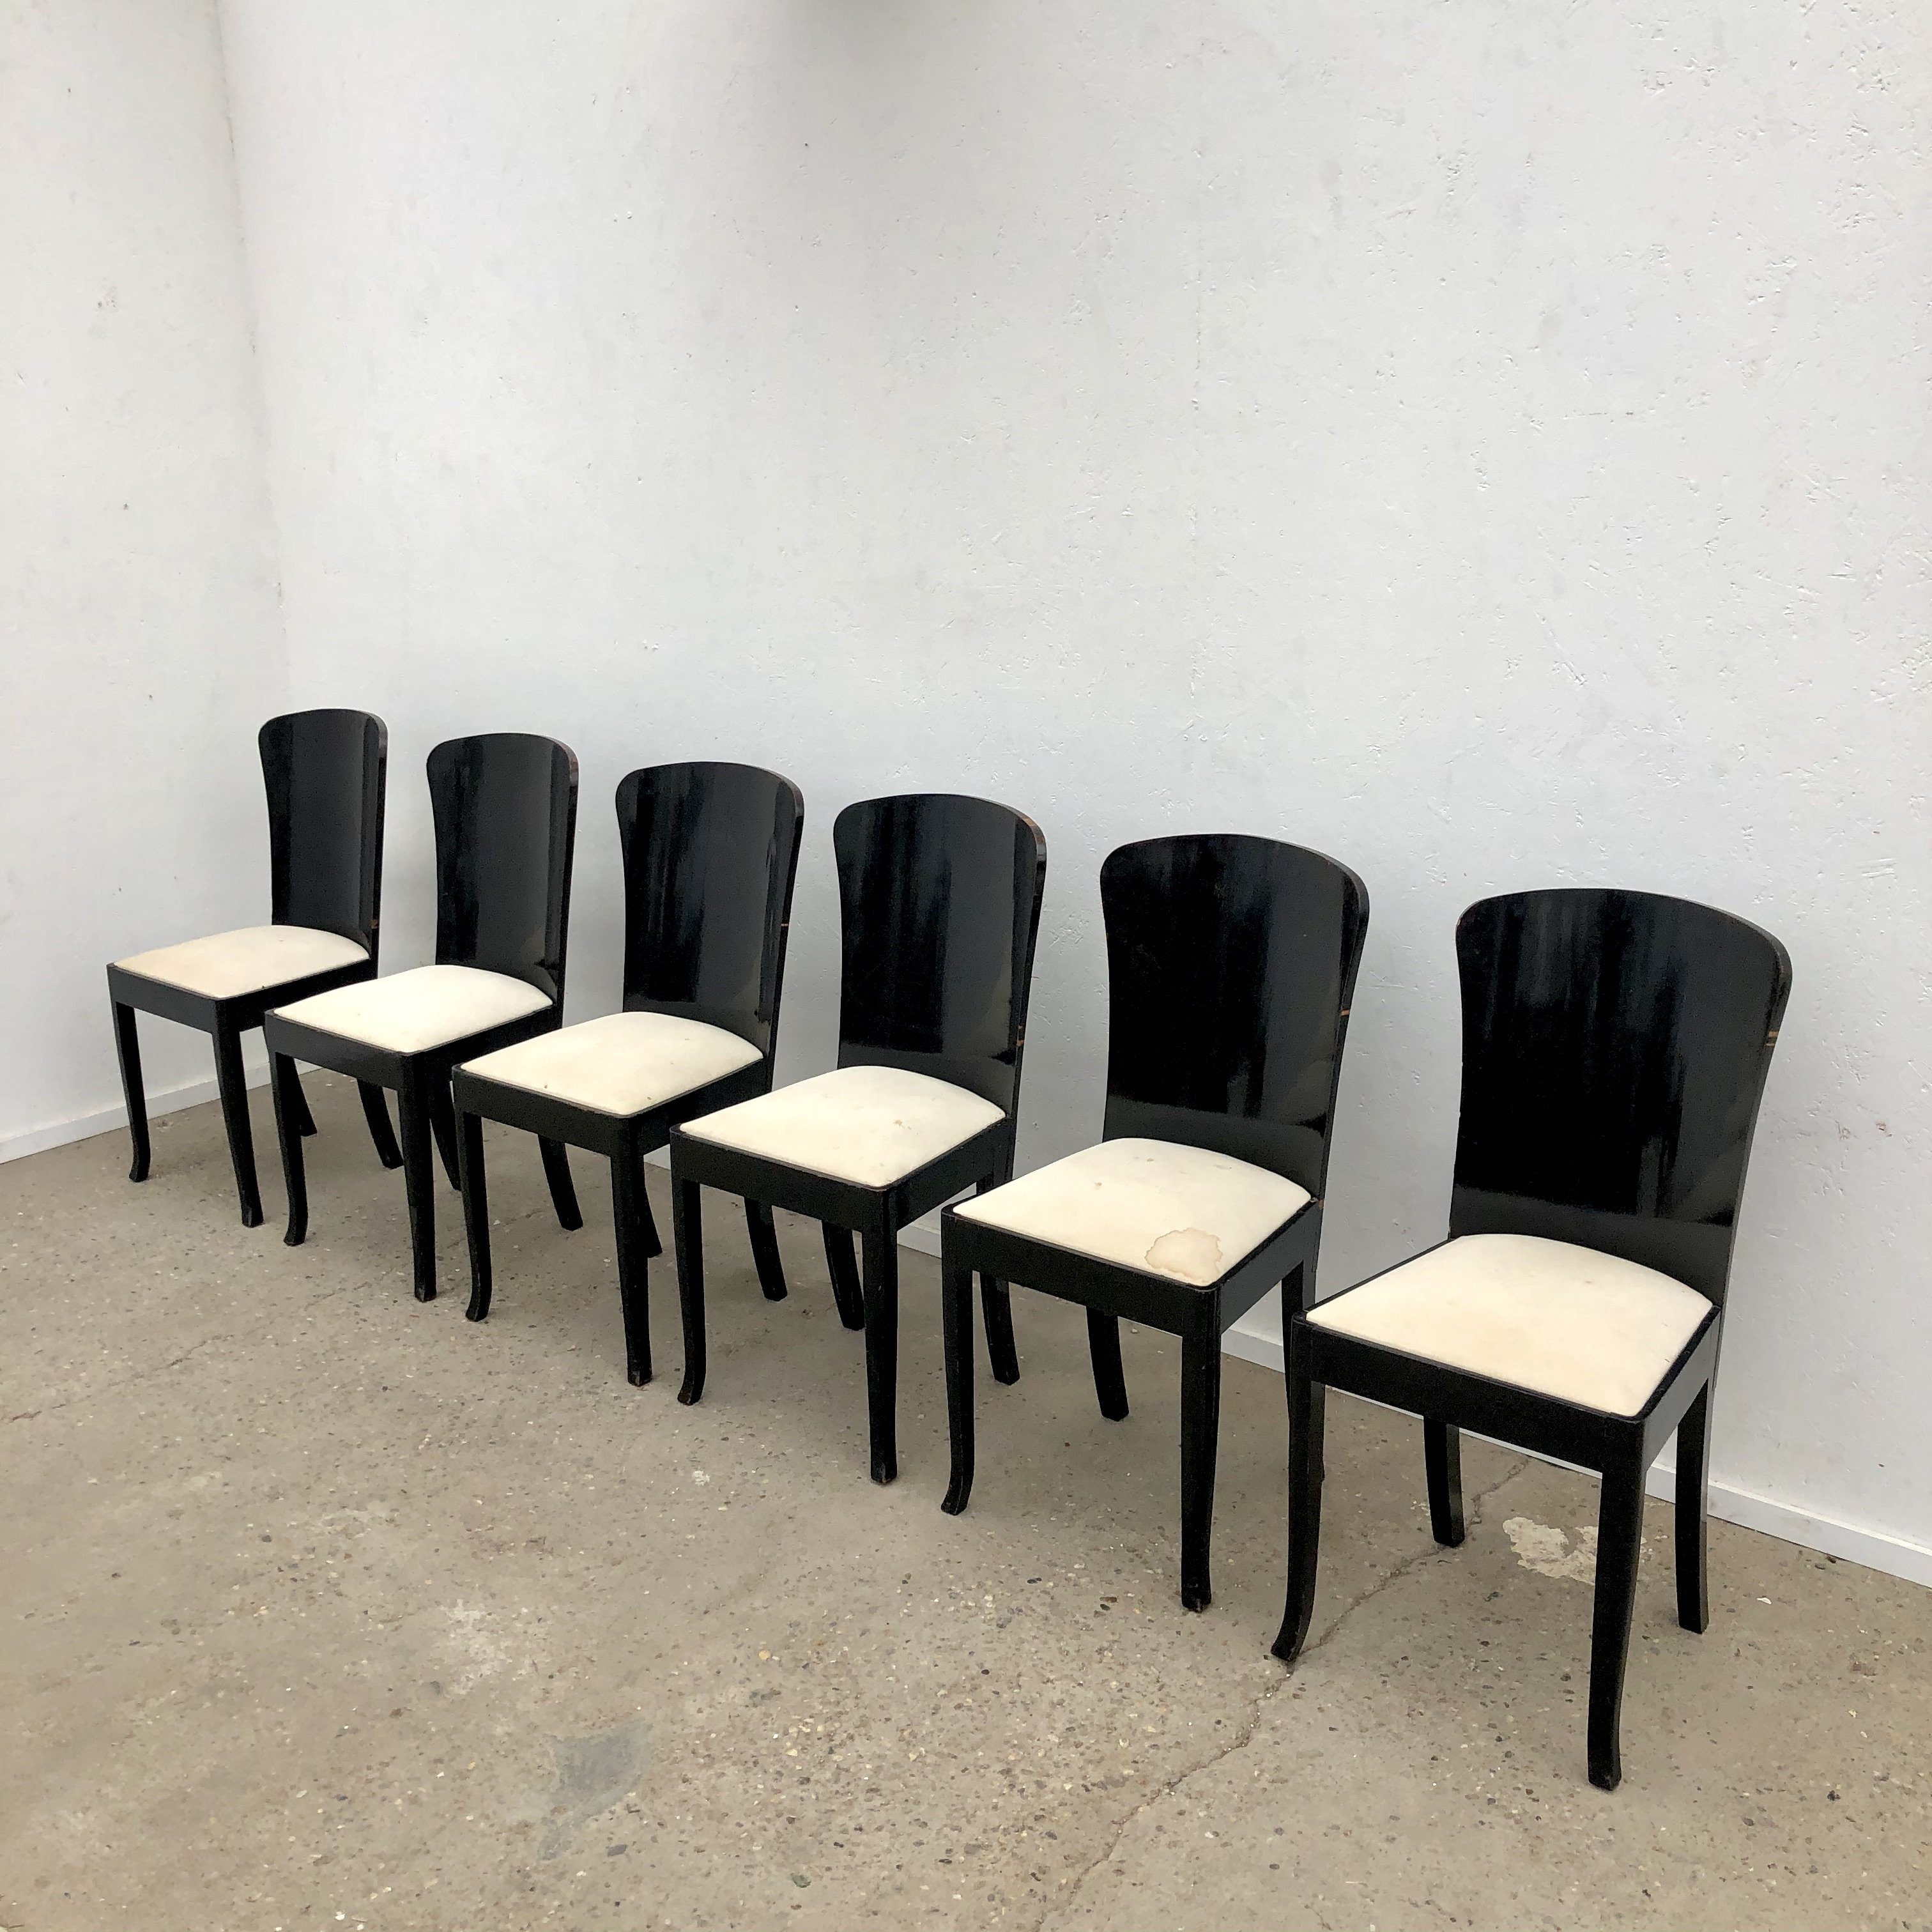 Art Deco Style Dining Chairs 1950s 117793